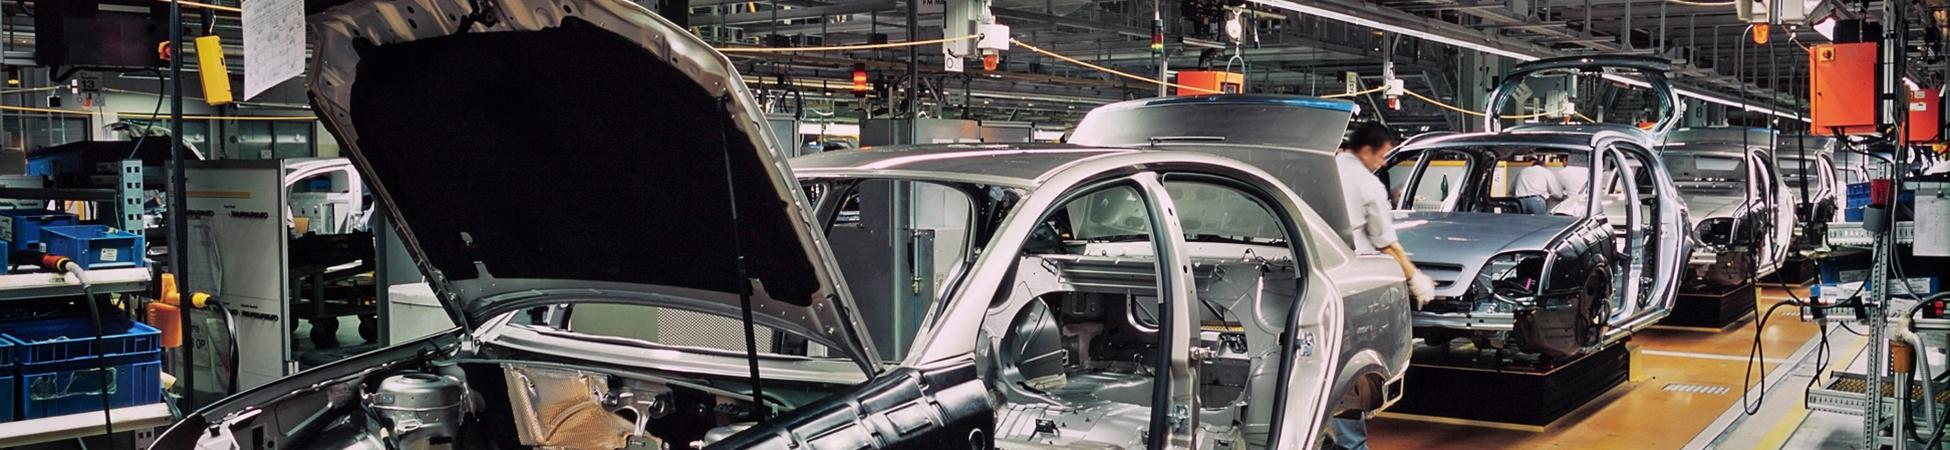 AUTO AND EQUIPMENT MANUFACTURING